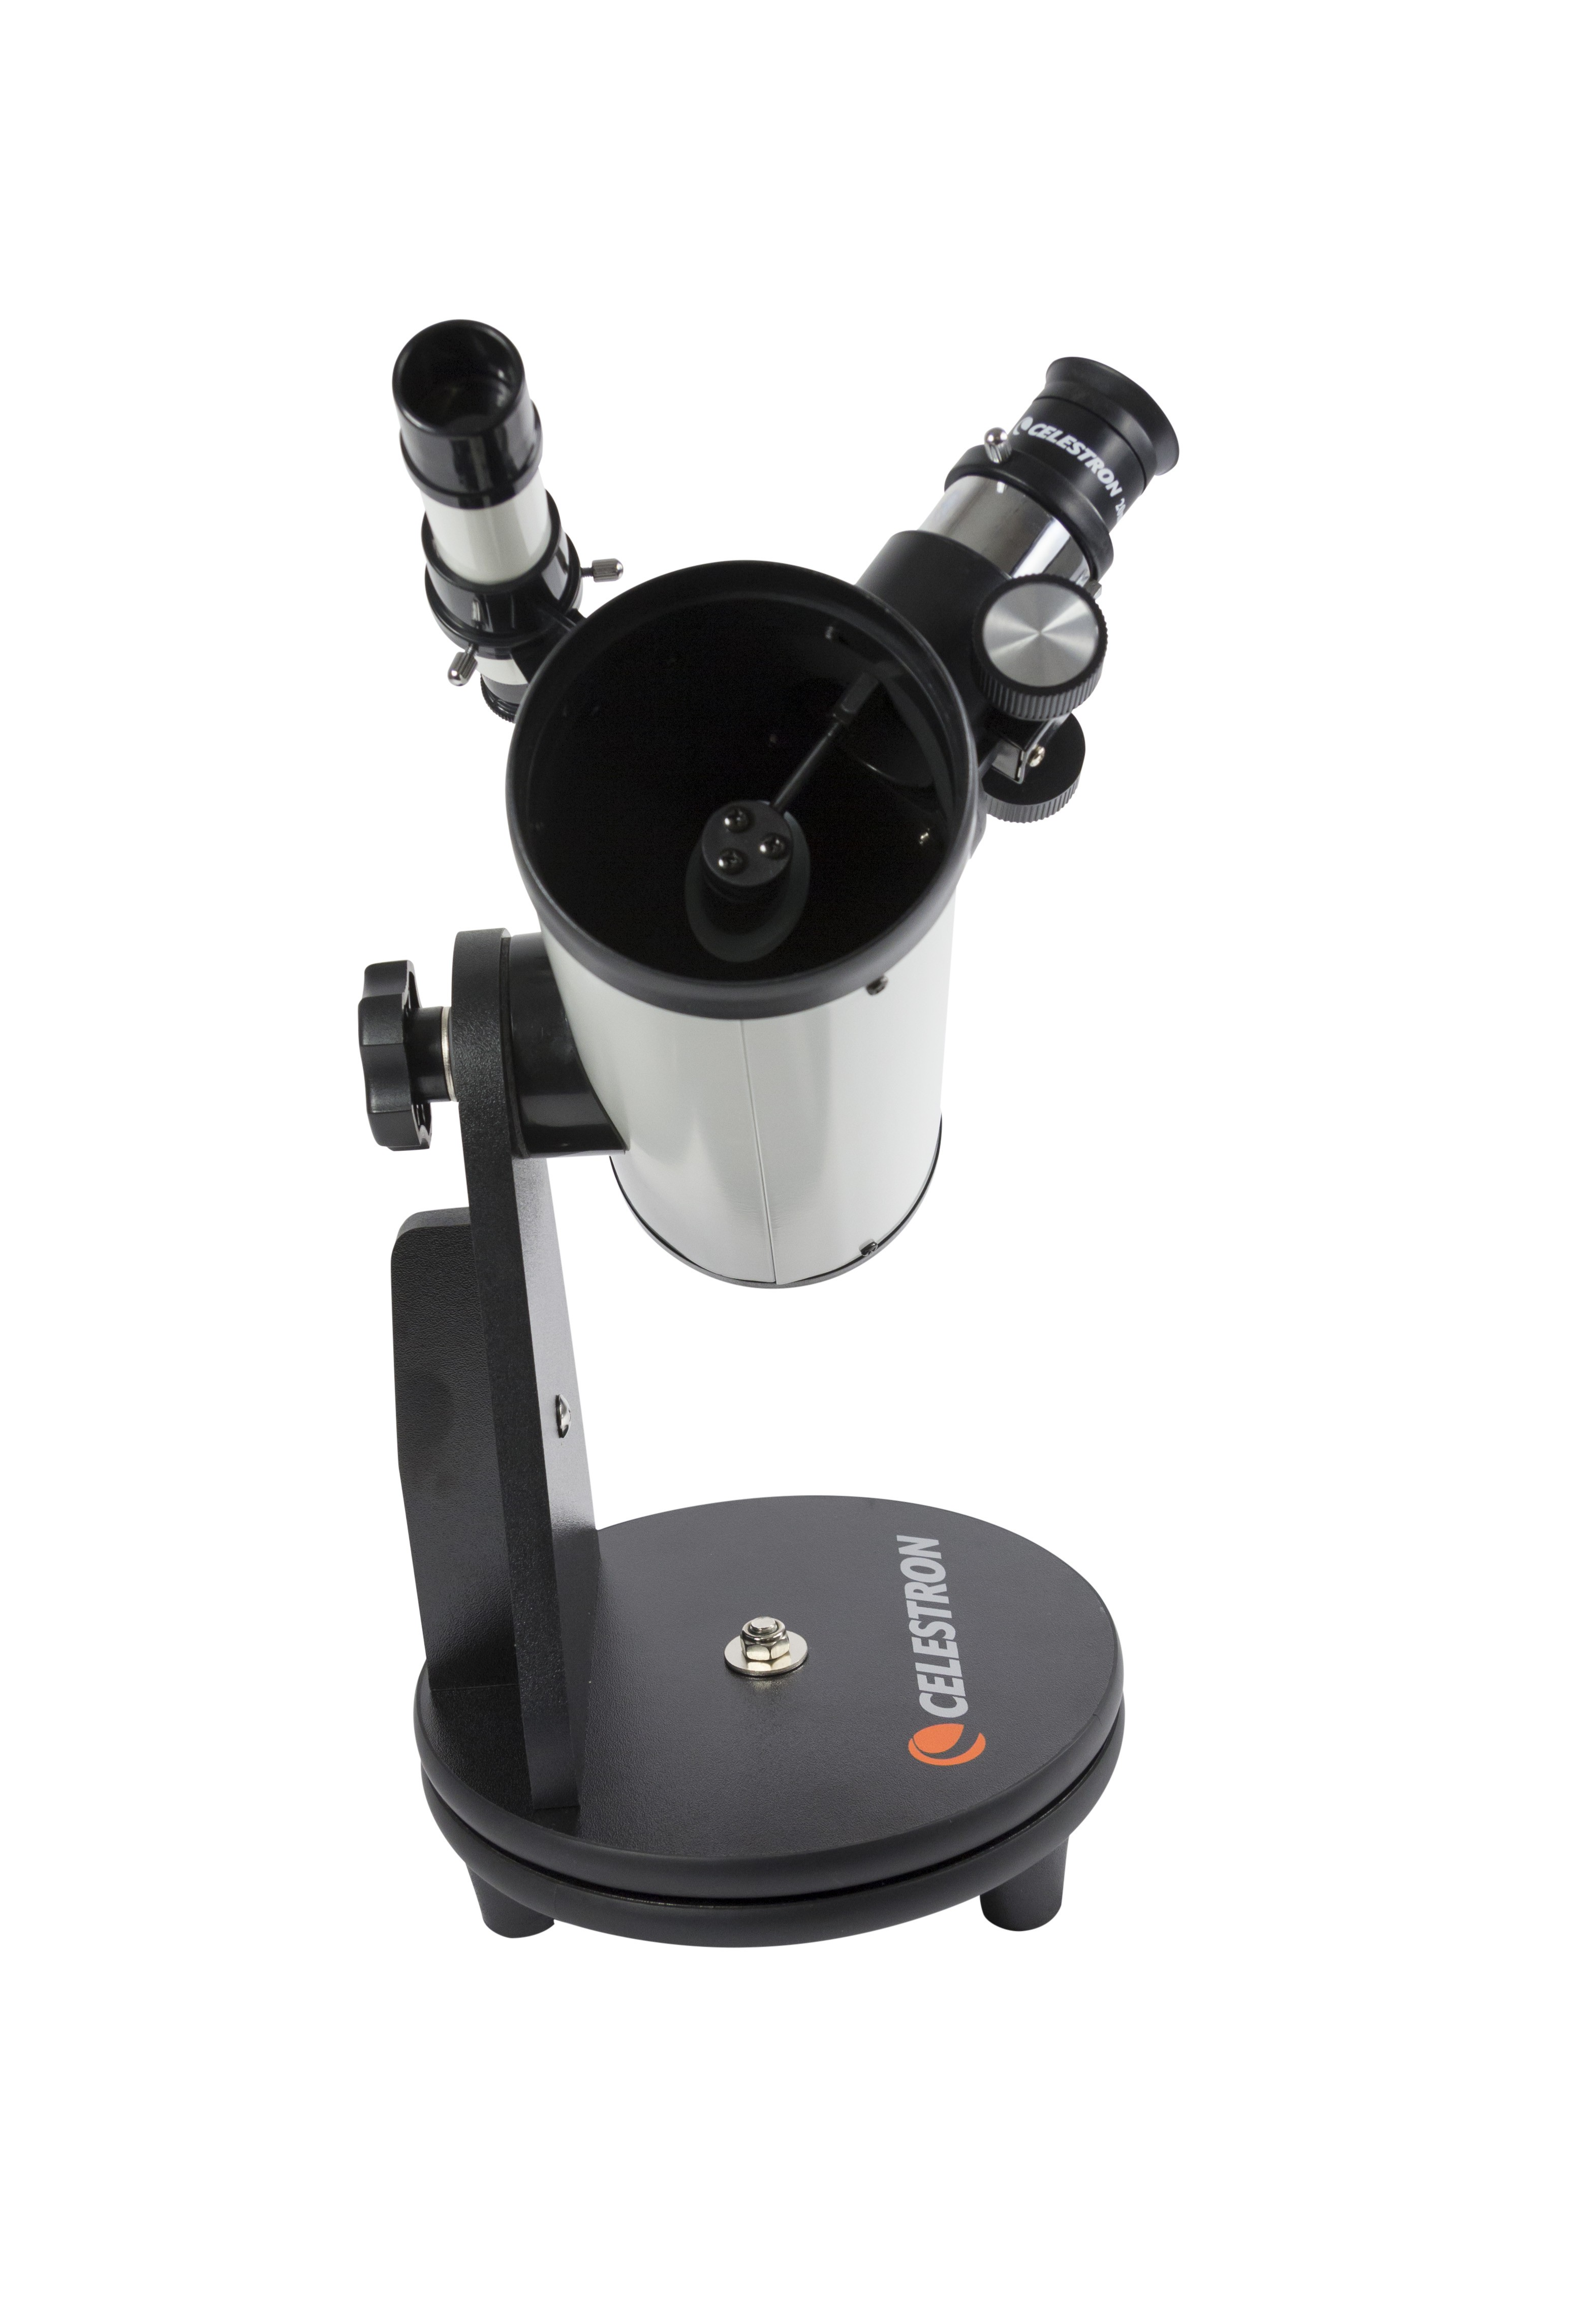 celestron cometron firstscope 76 review